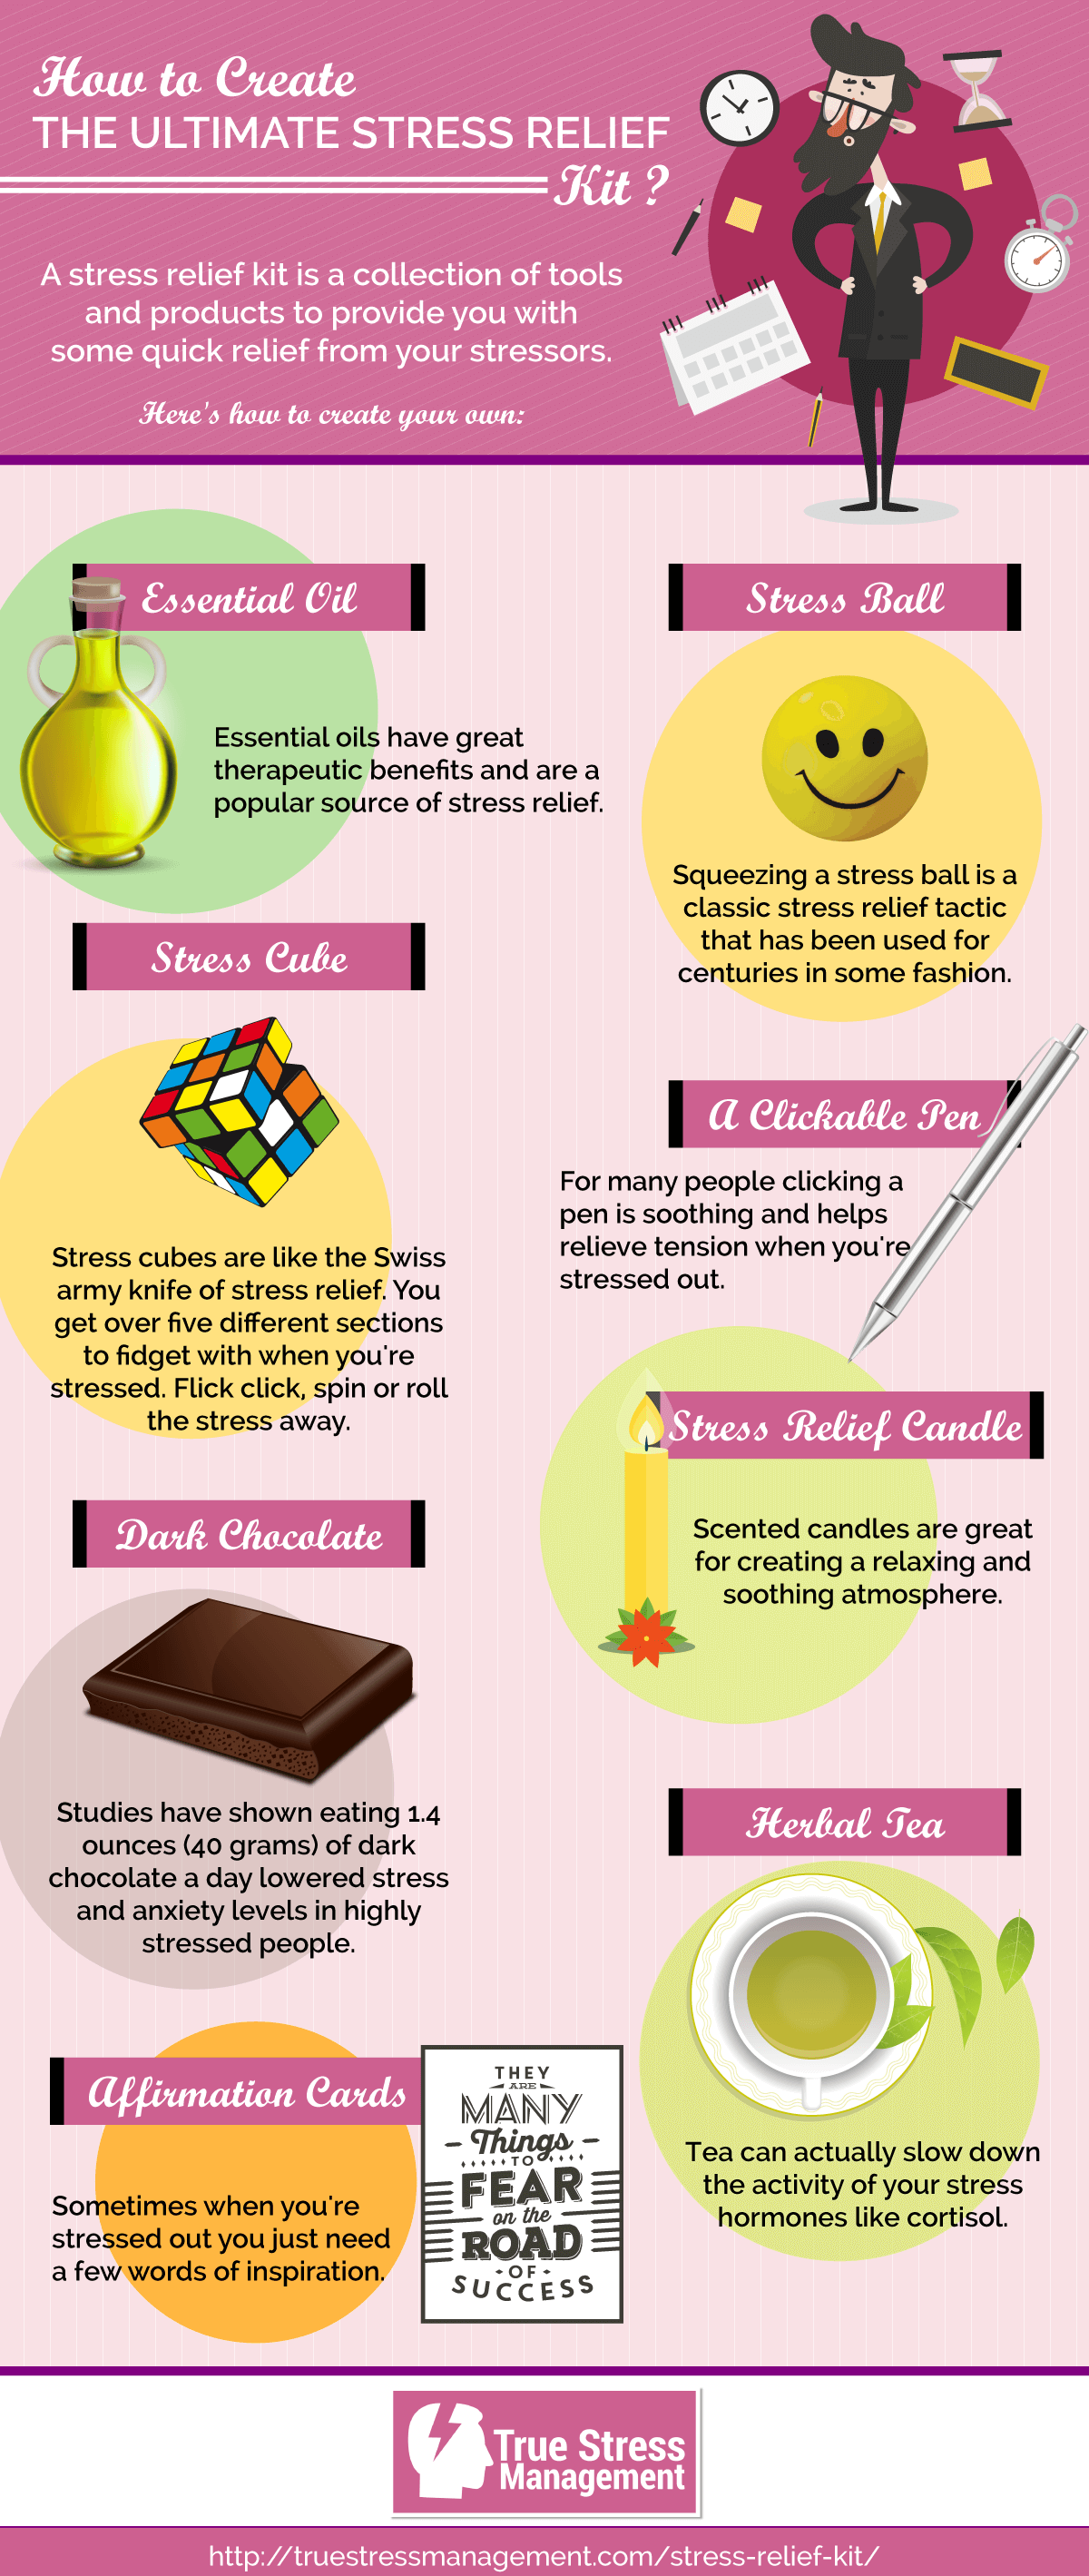 stress relief kit infographic